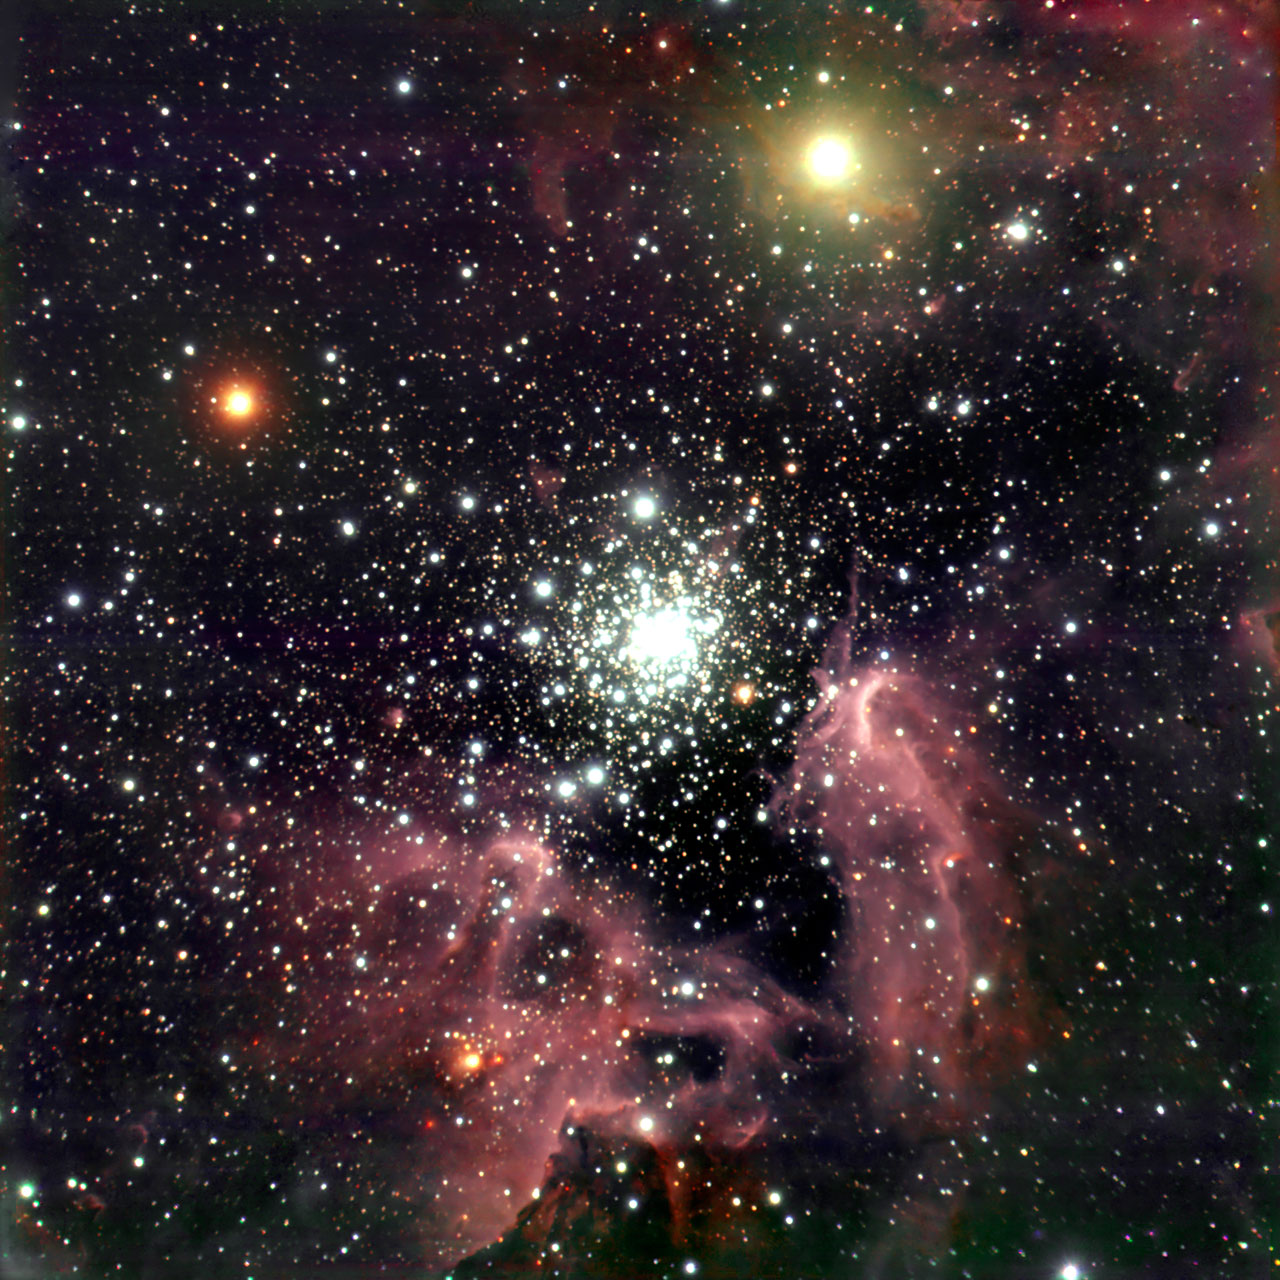 Mounted image 027: The Galactic starburst region NGC 3603